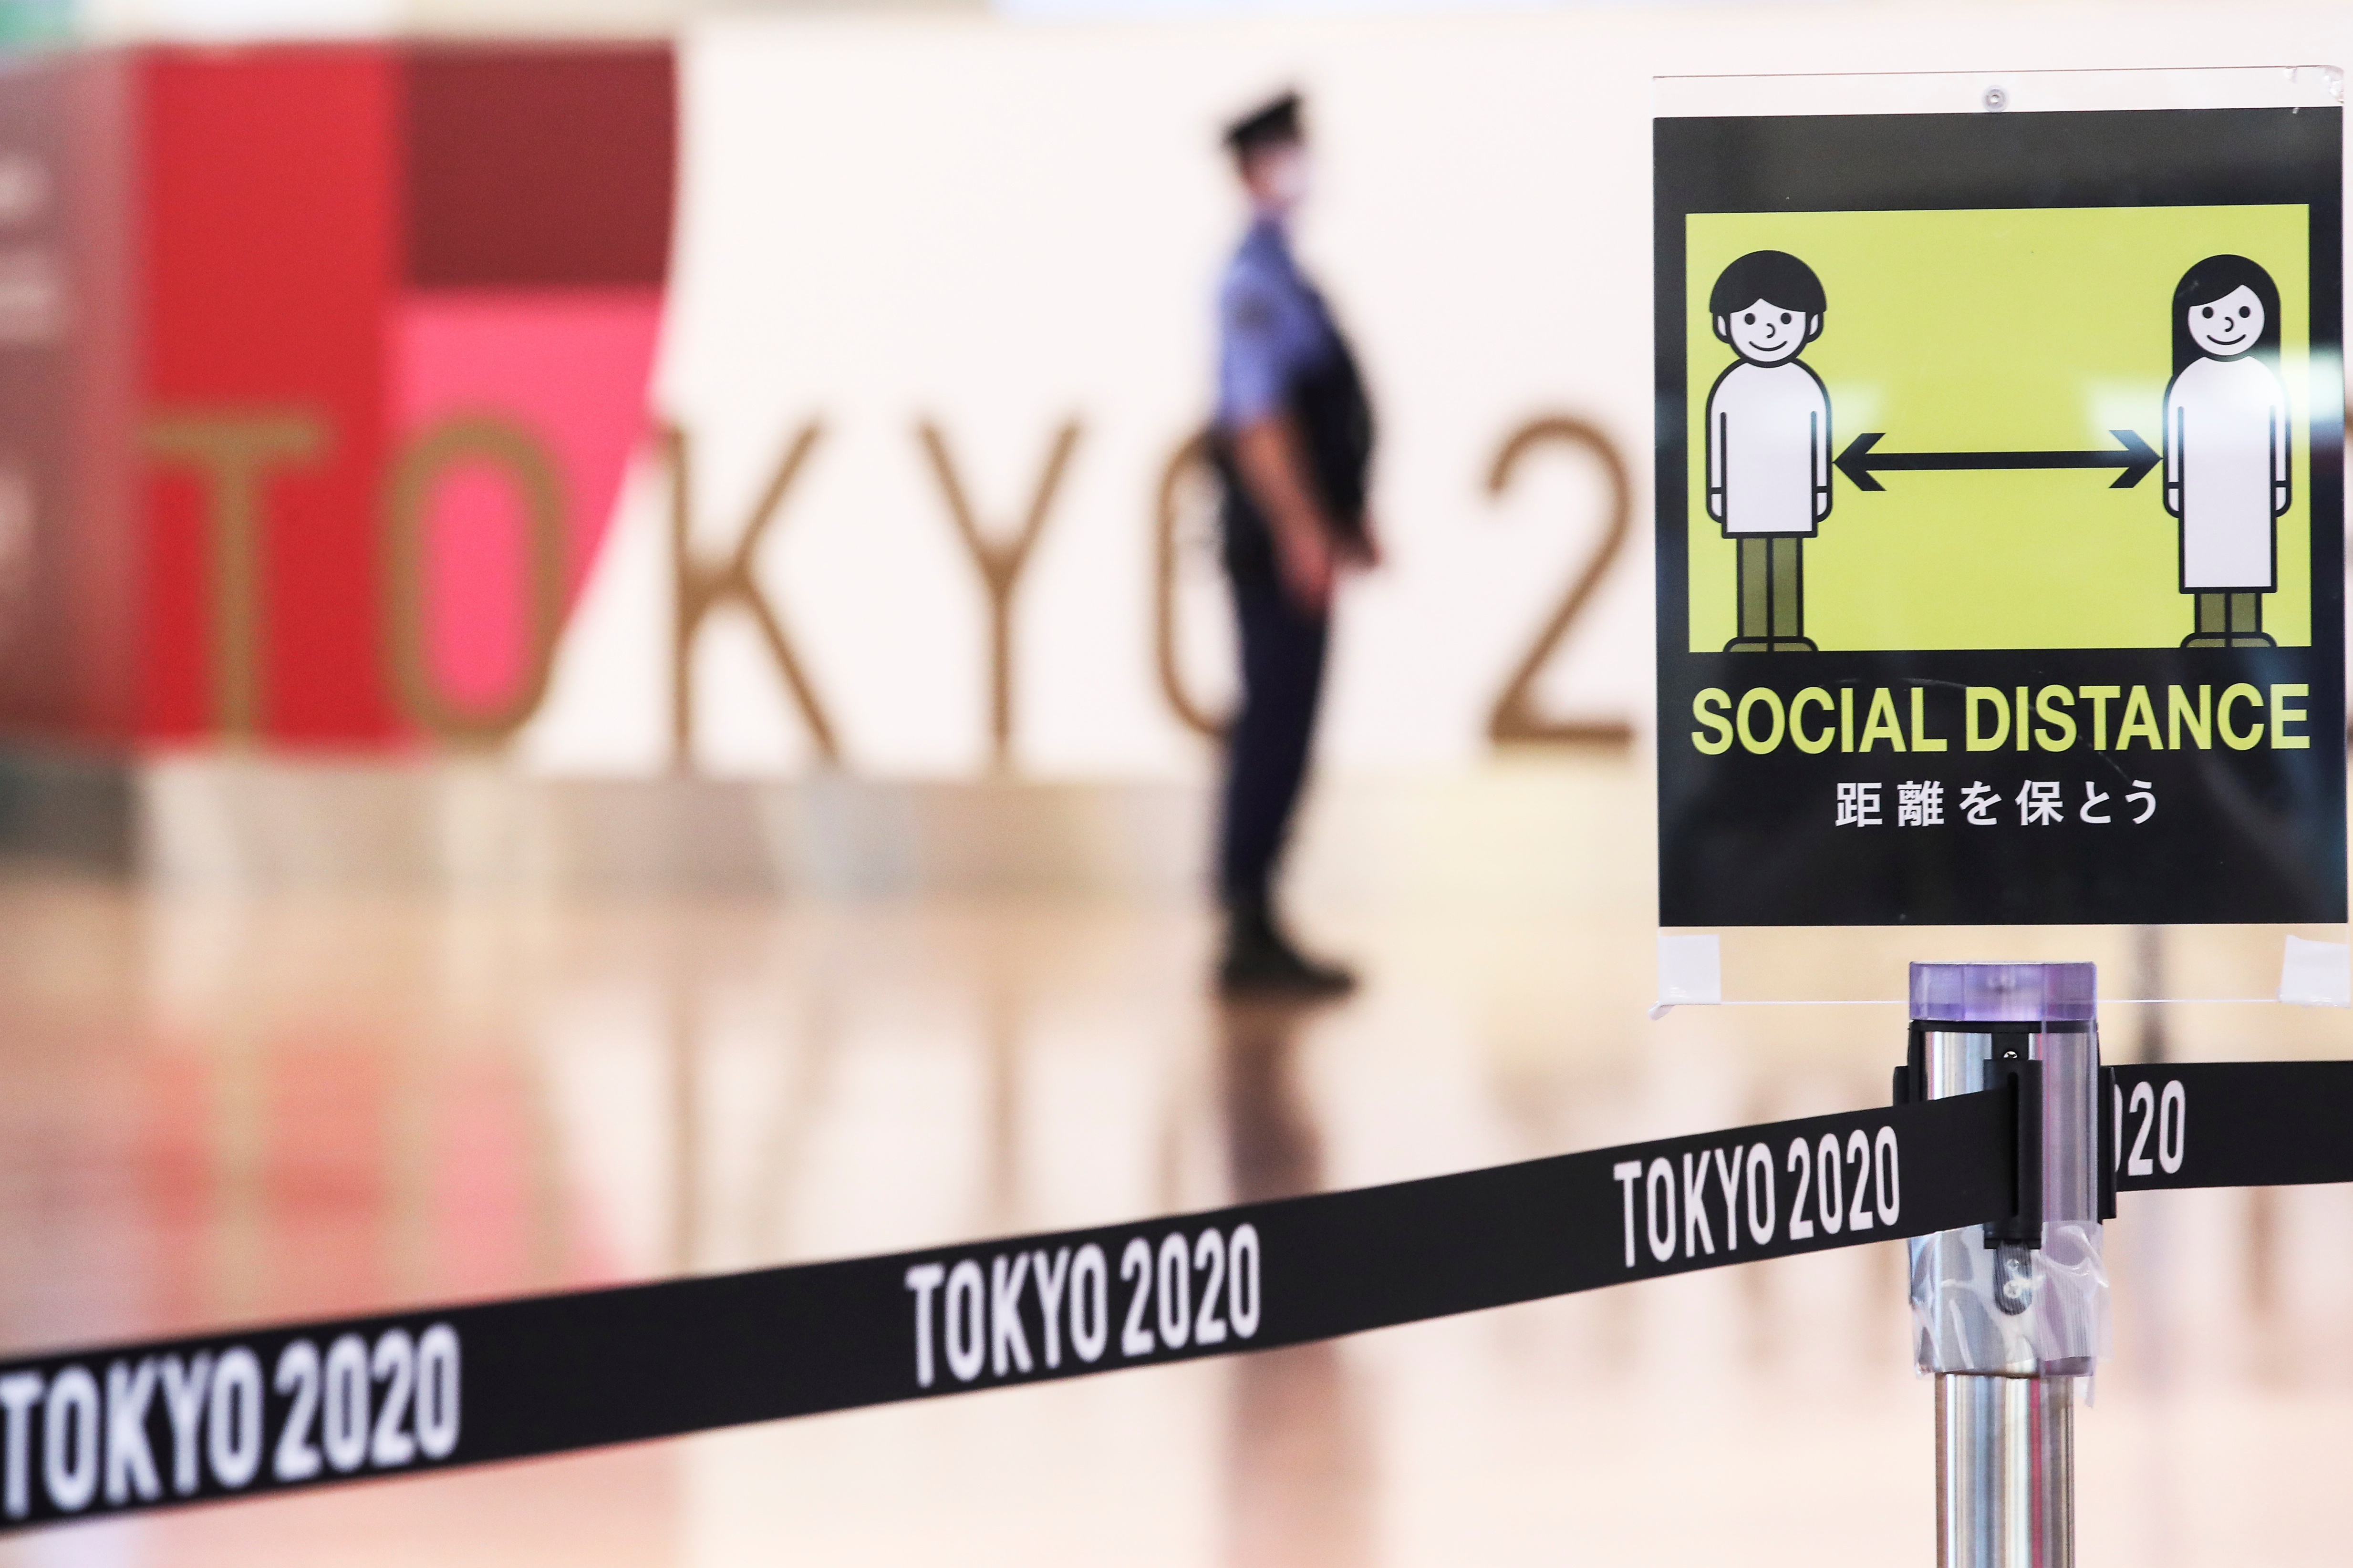 A social distancing sign is seen in front of a police officer before the arrival of International Olympic Committee (IOC) President Thomas Bach at Haneda Airport ahead of Tokyo 2020 Olympic Games, in Tokyo, Japan July 8, 2021. REUTERS/Kim Kyung-Hoon